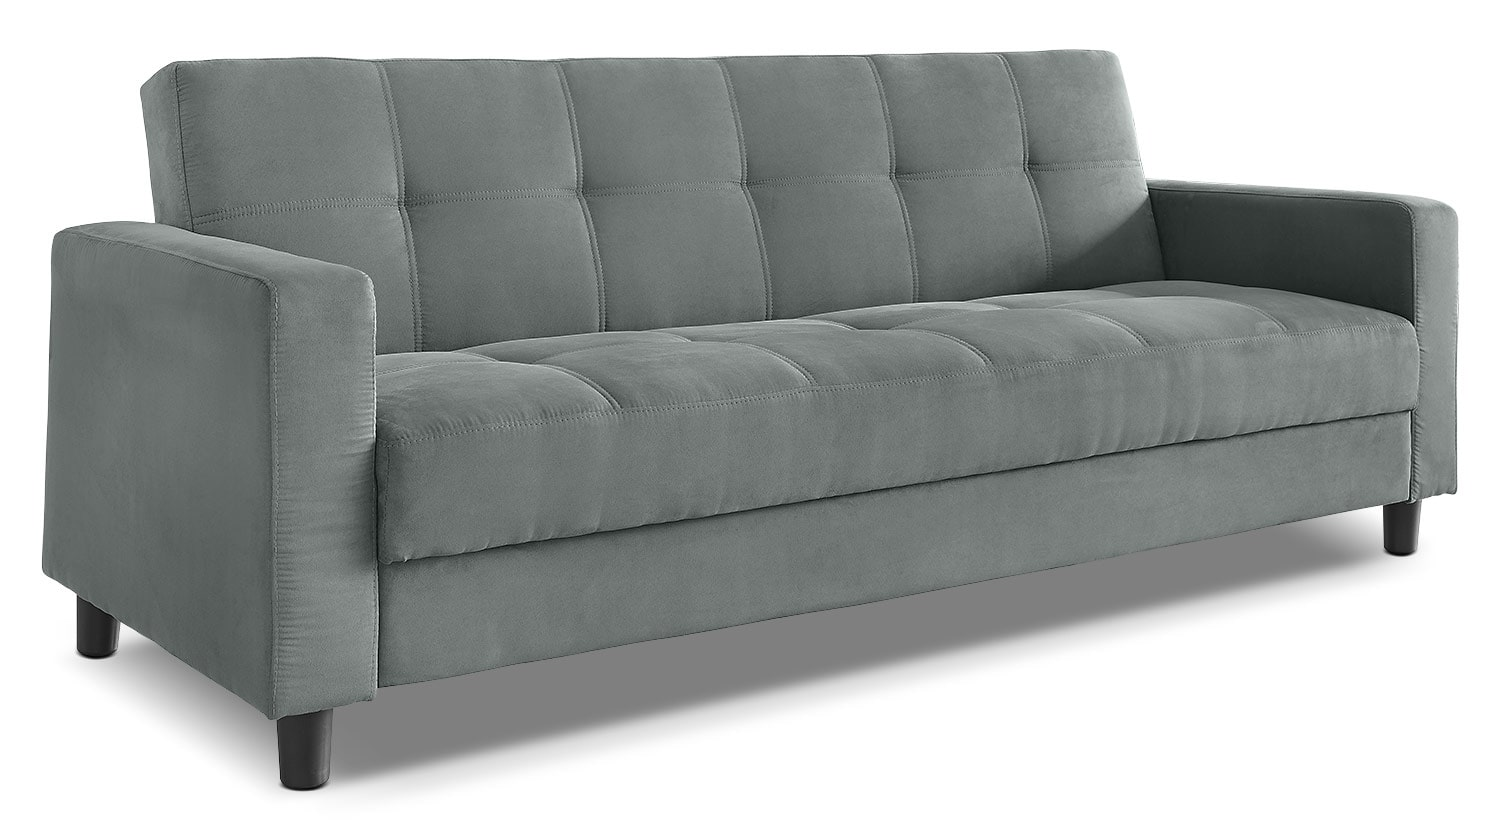 [Raeburn Convertible Sofa]